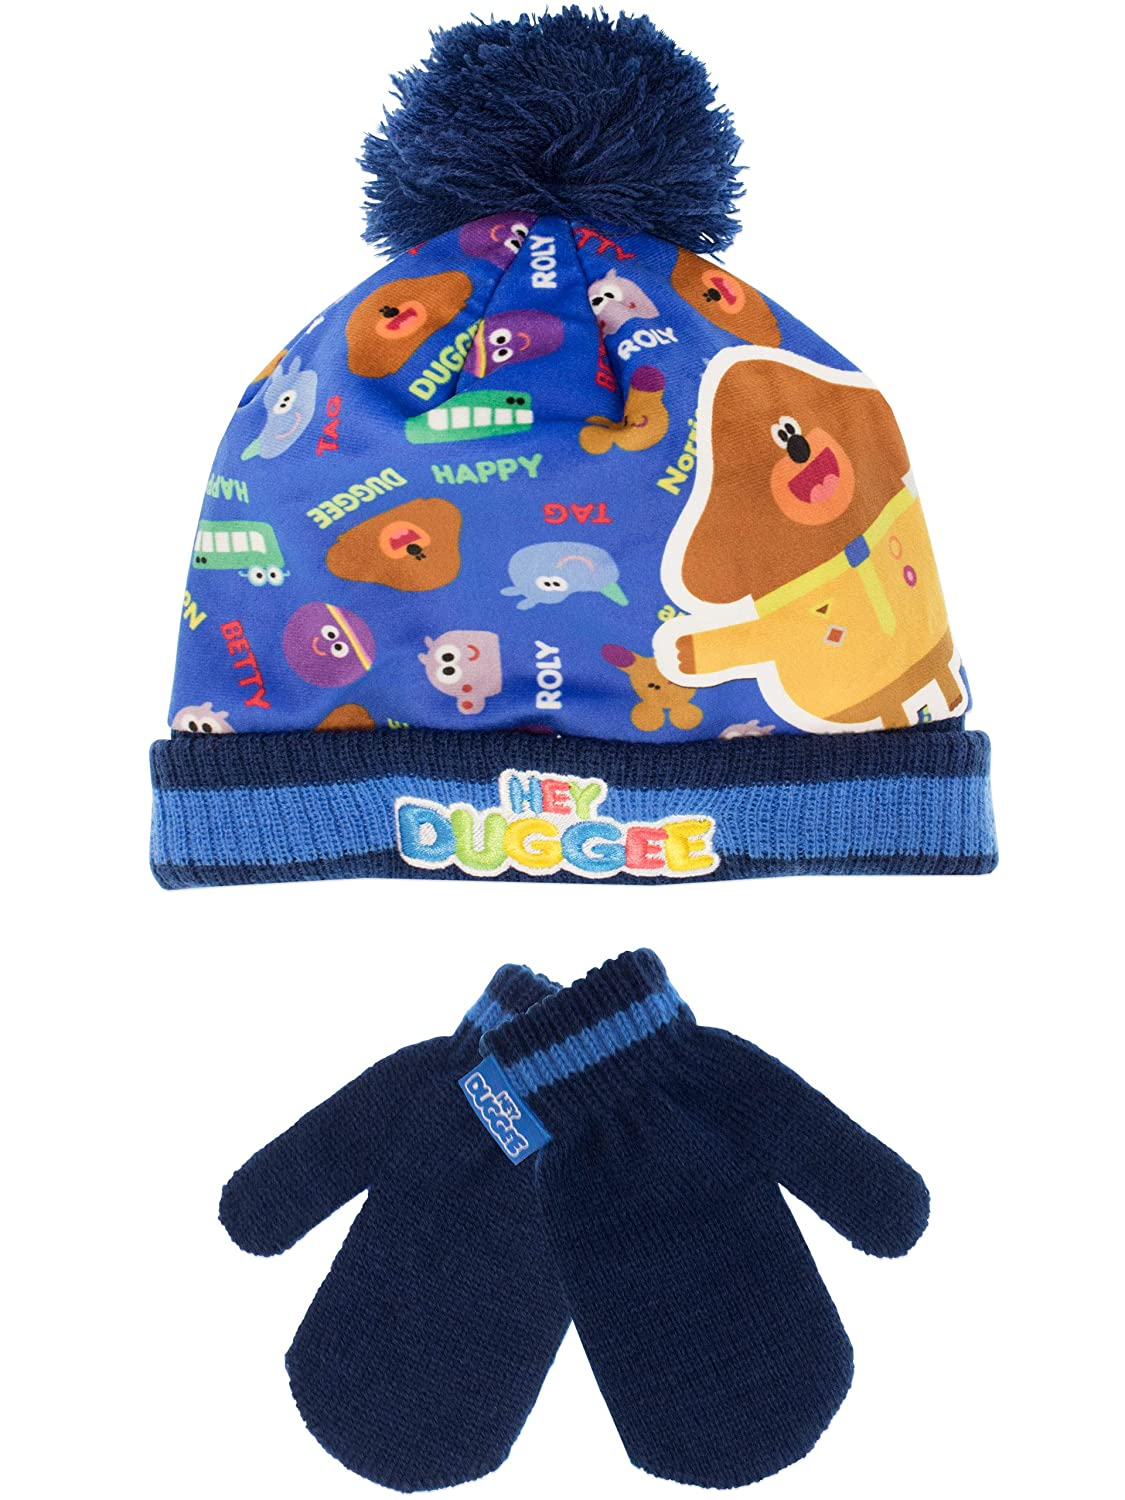 2cd32343164 Hey Duggee Boys Squirrel Club Hat and Gloves Set One Size ...